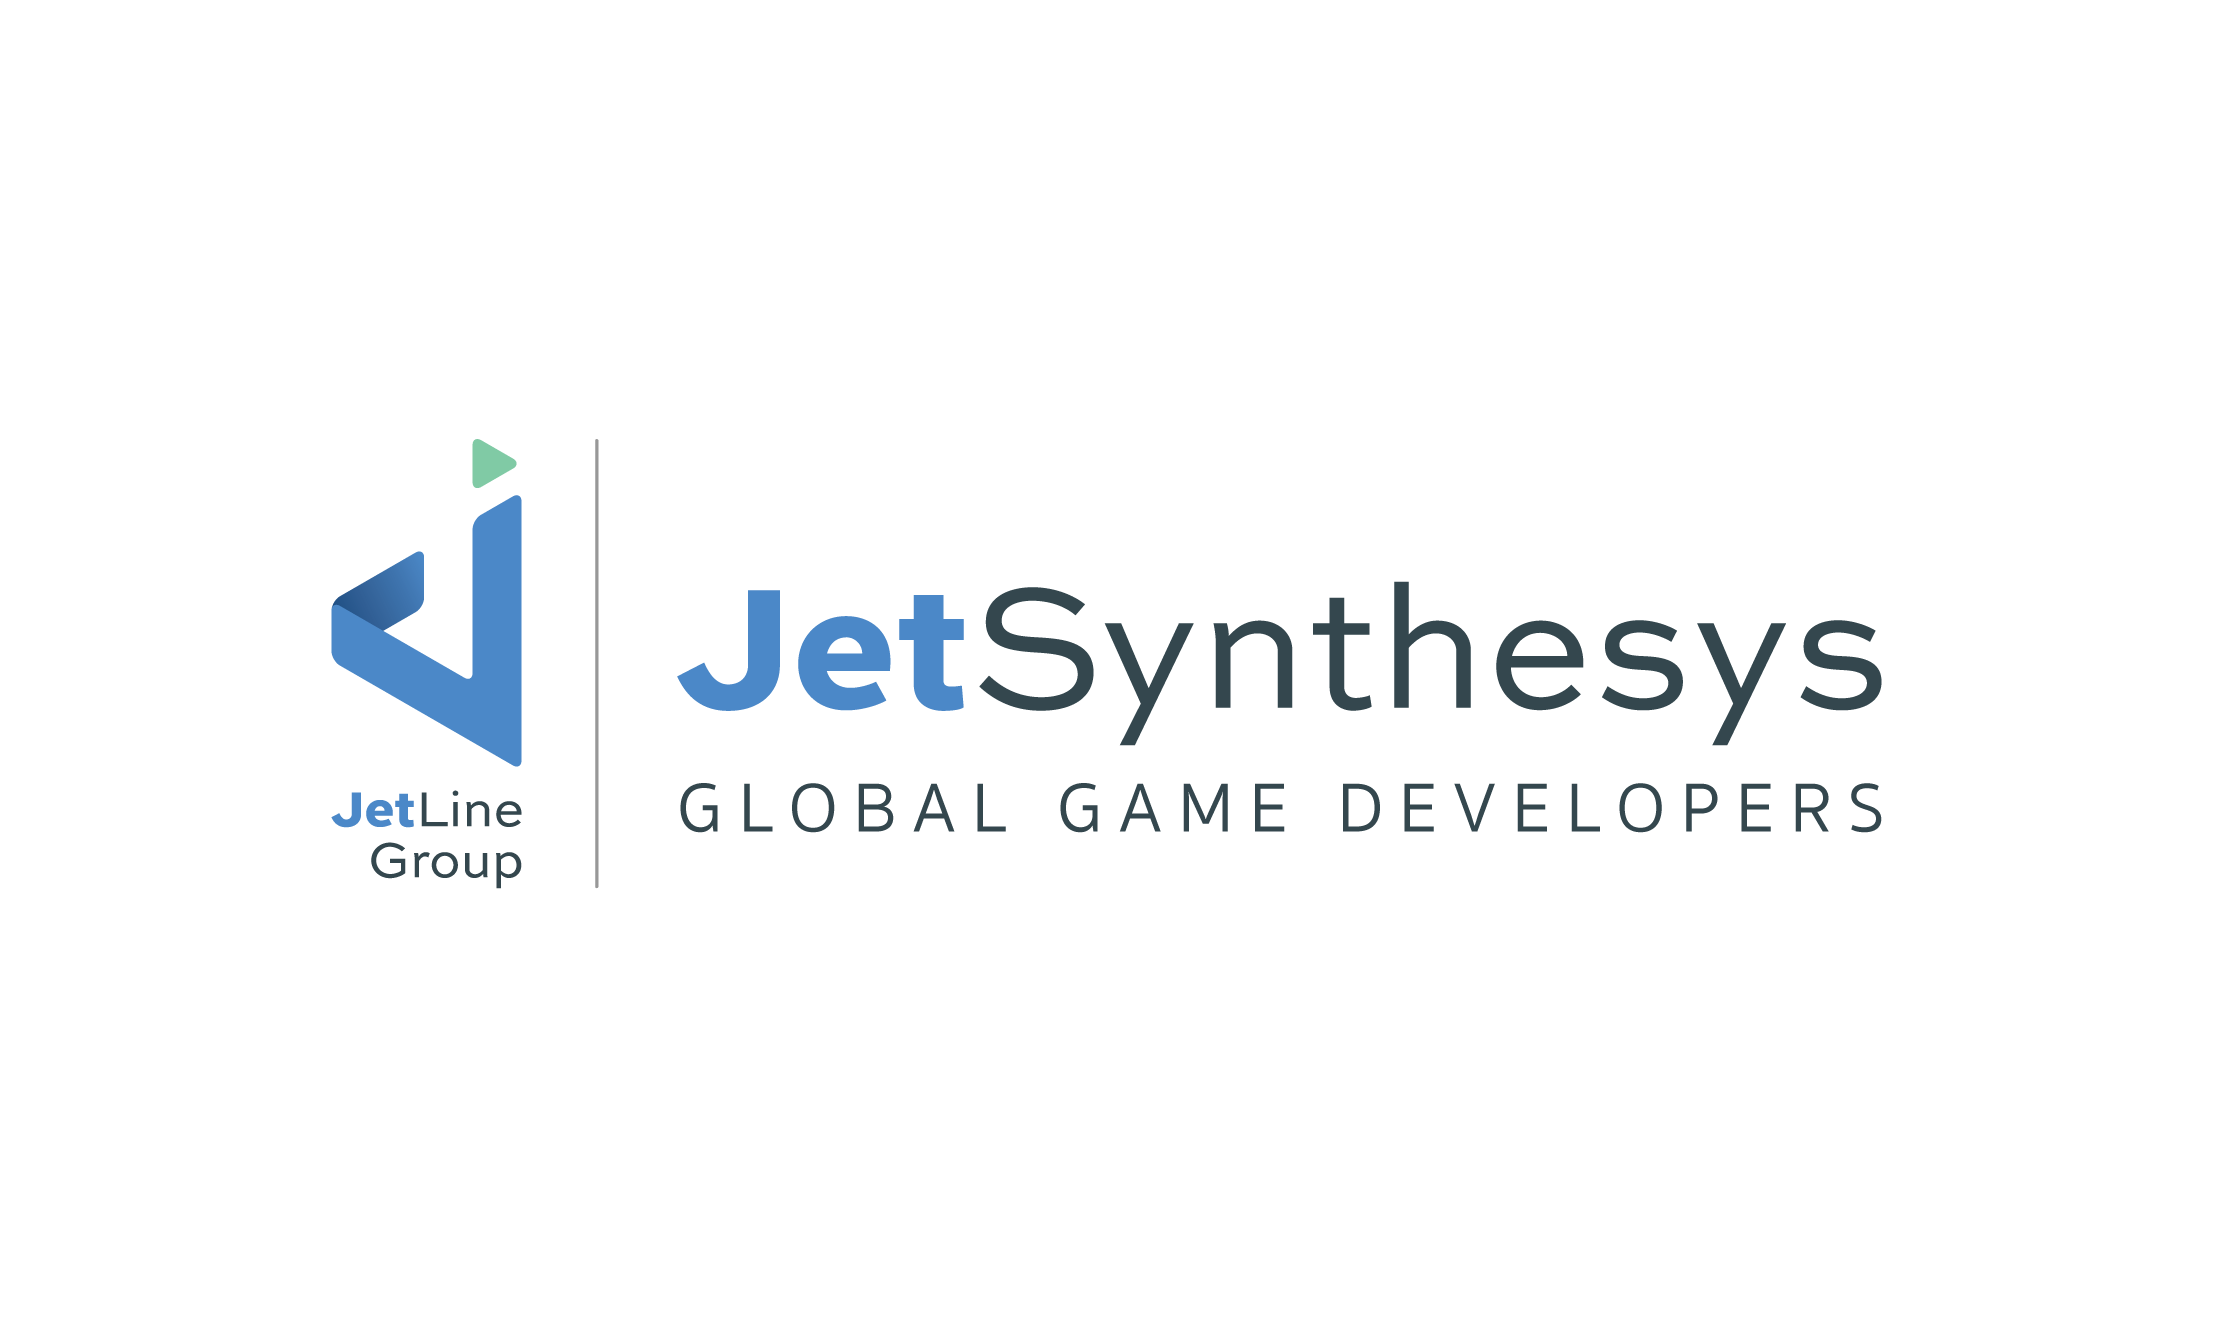 JetSynthesys is Rising in the Indian Mobile Gaming industry and is all set for a New release